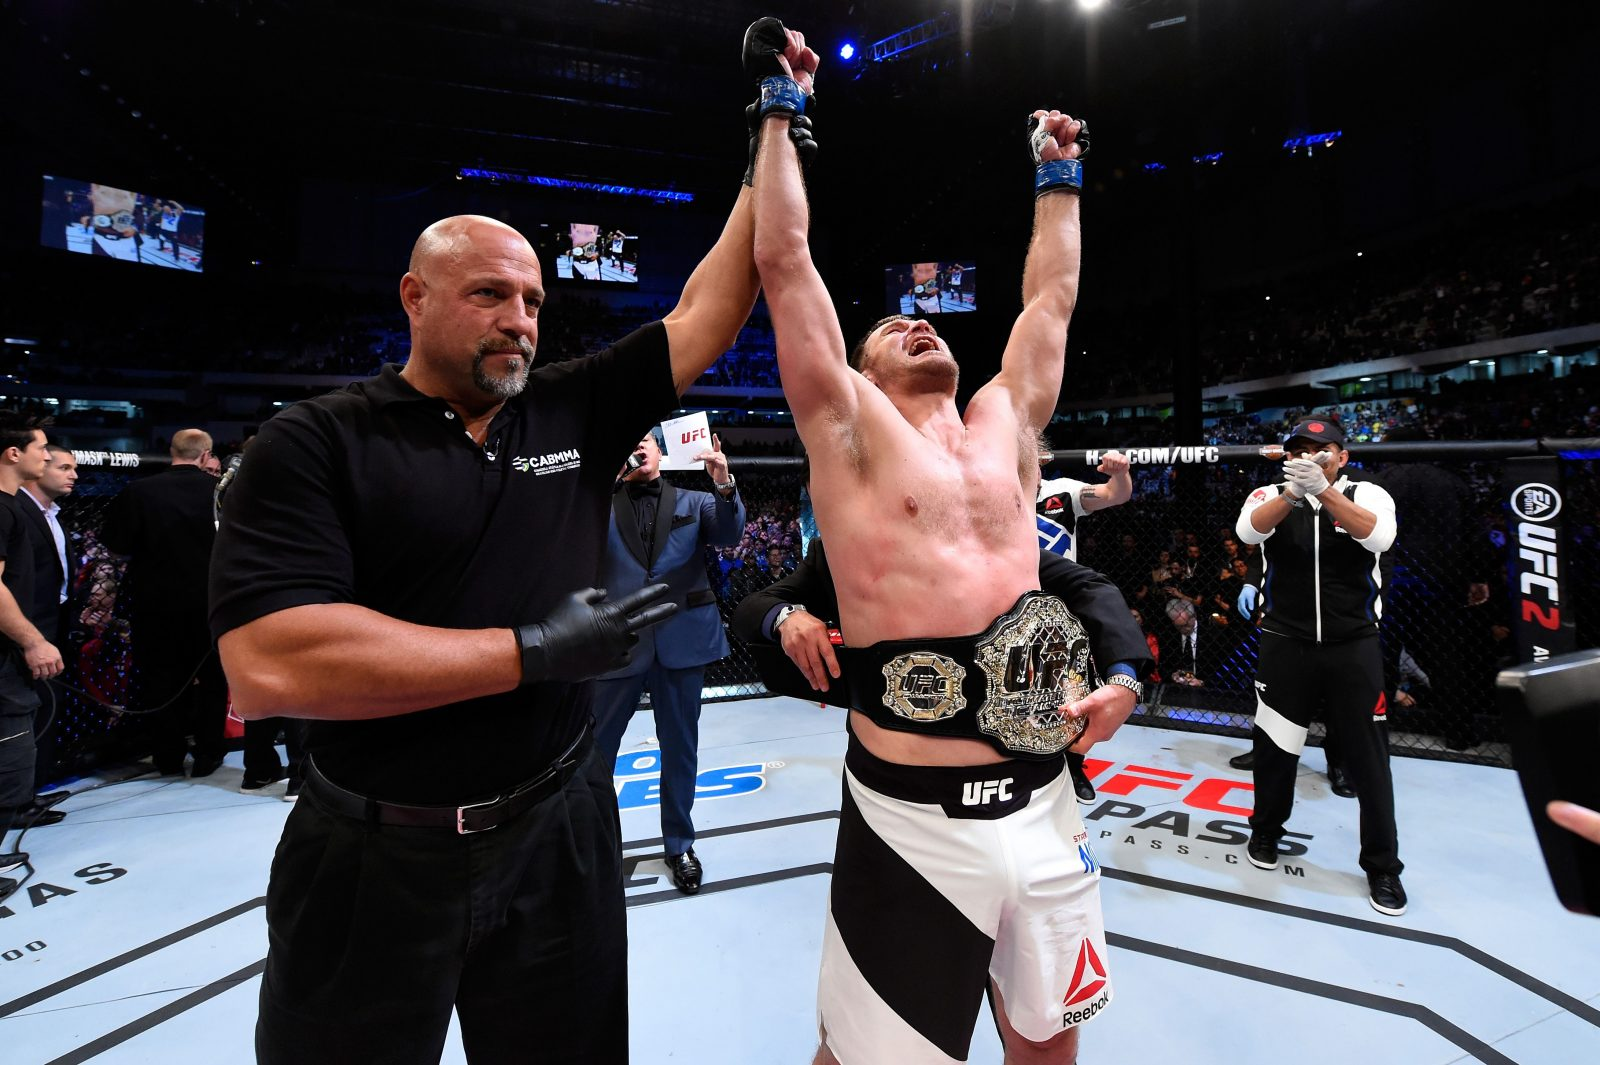 Stipe Miocic celebration